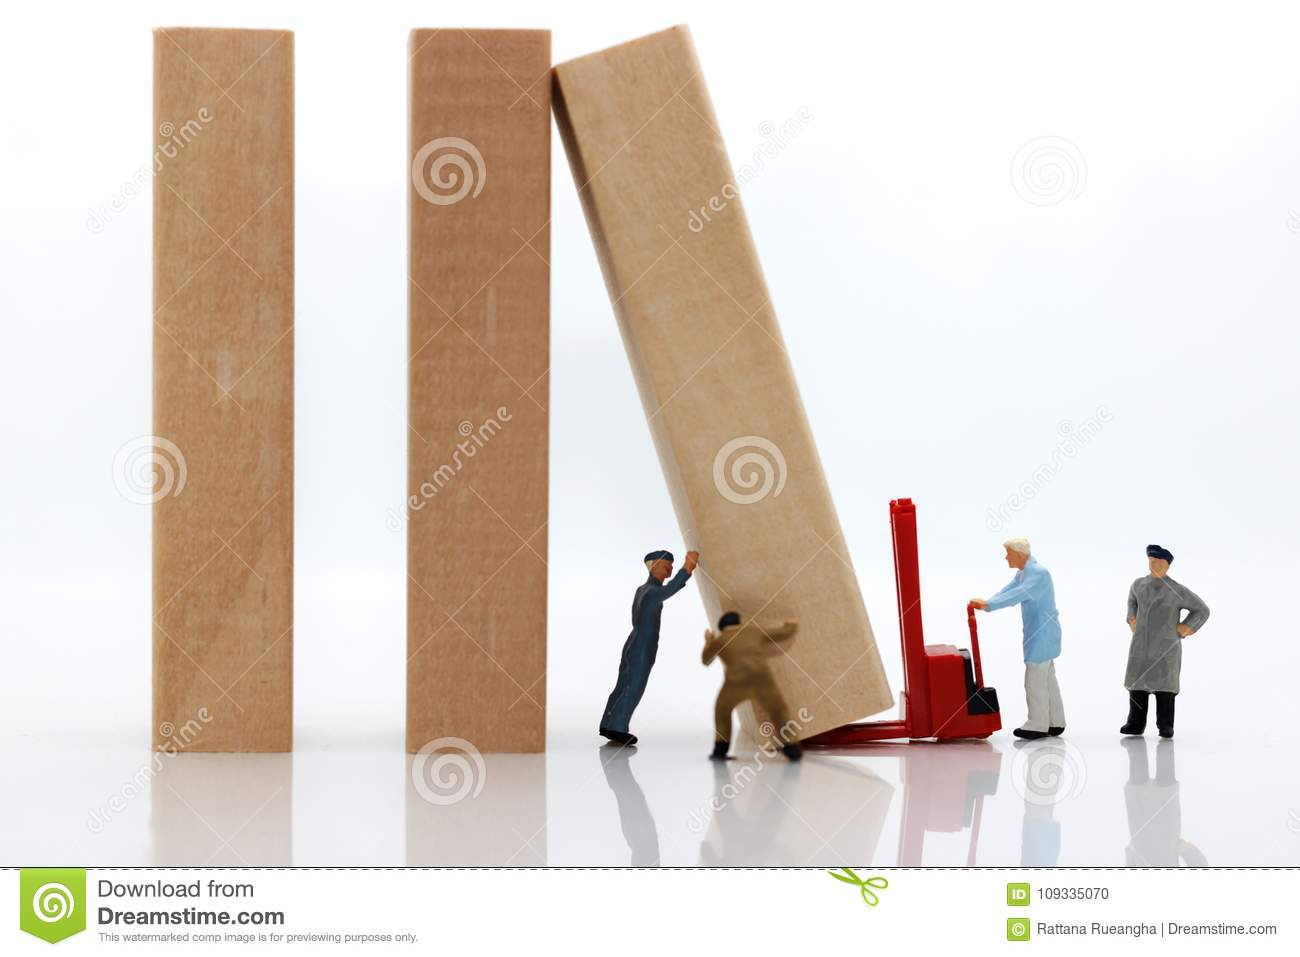 Miniature people: Workers team stopping the domino effect,